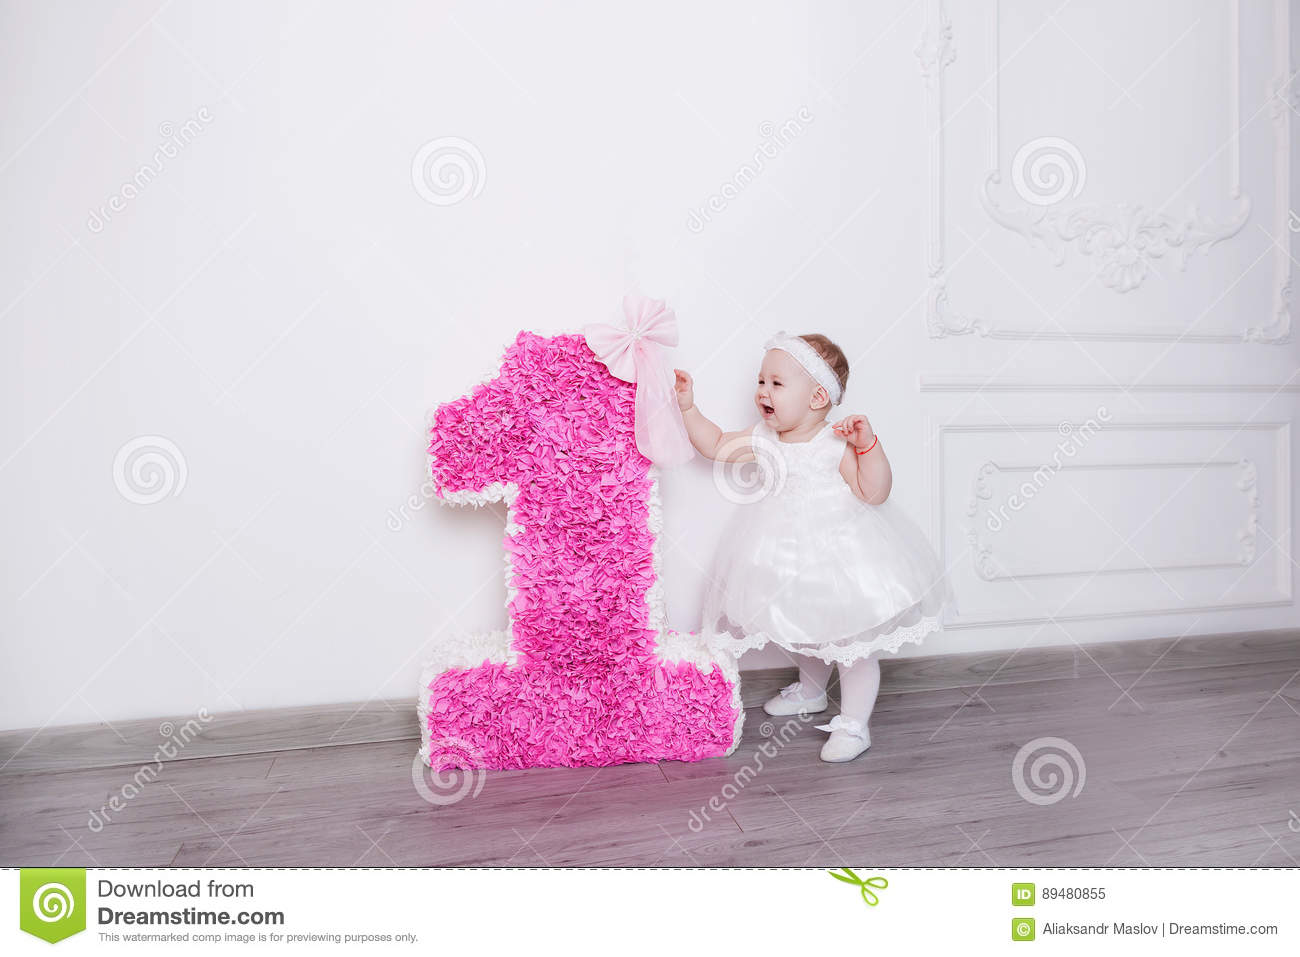 Birthday, the first year